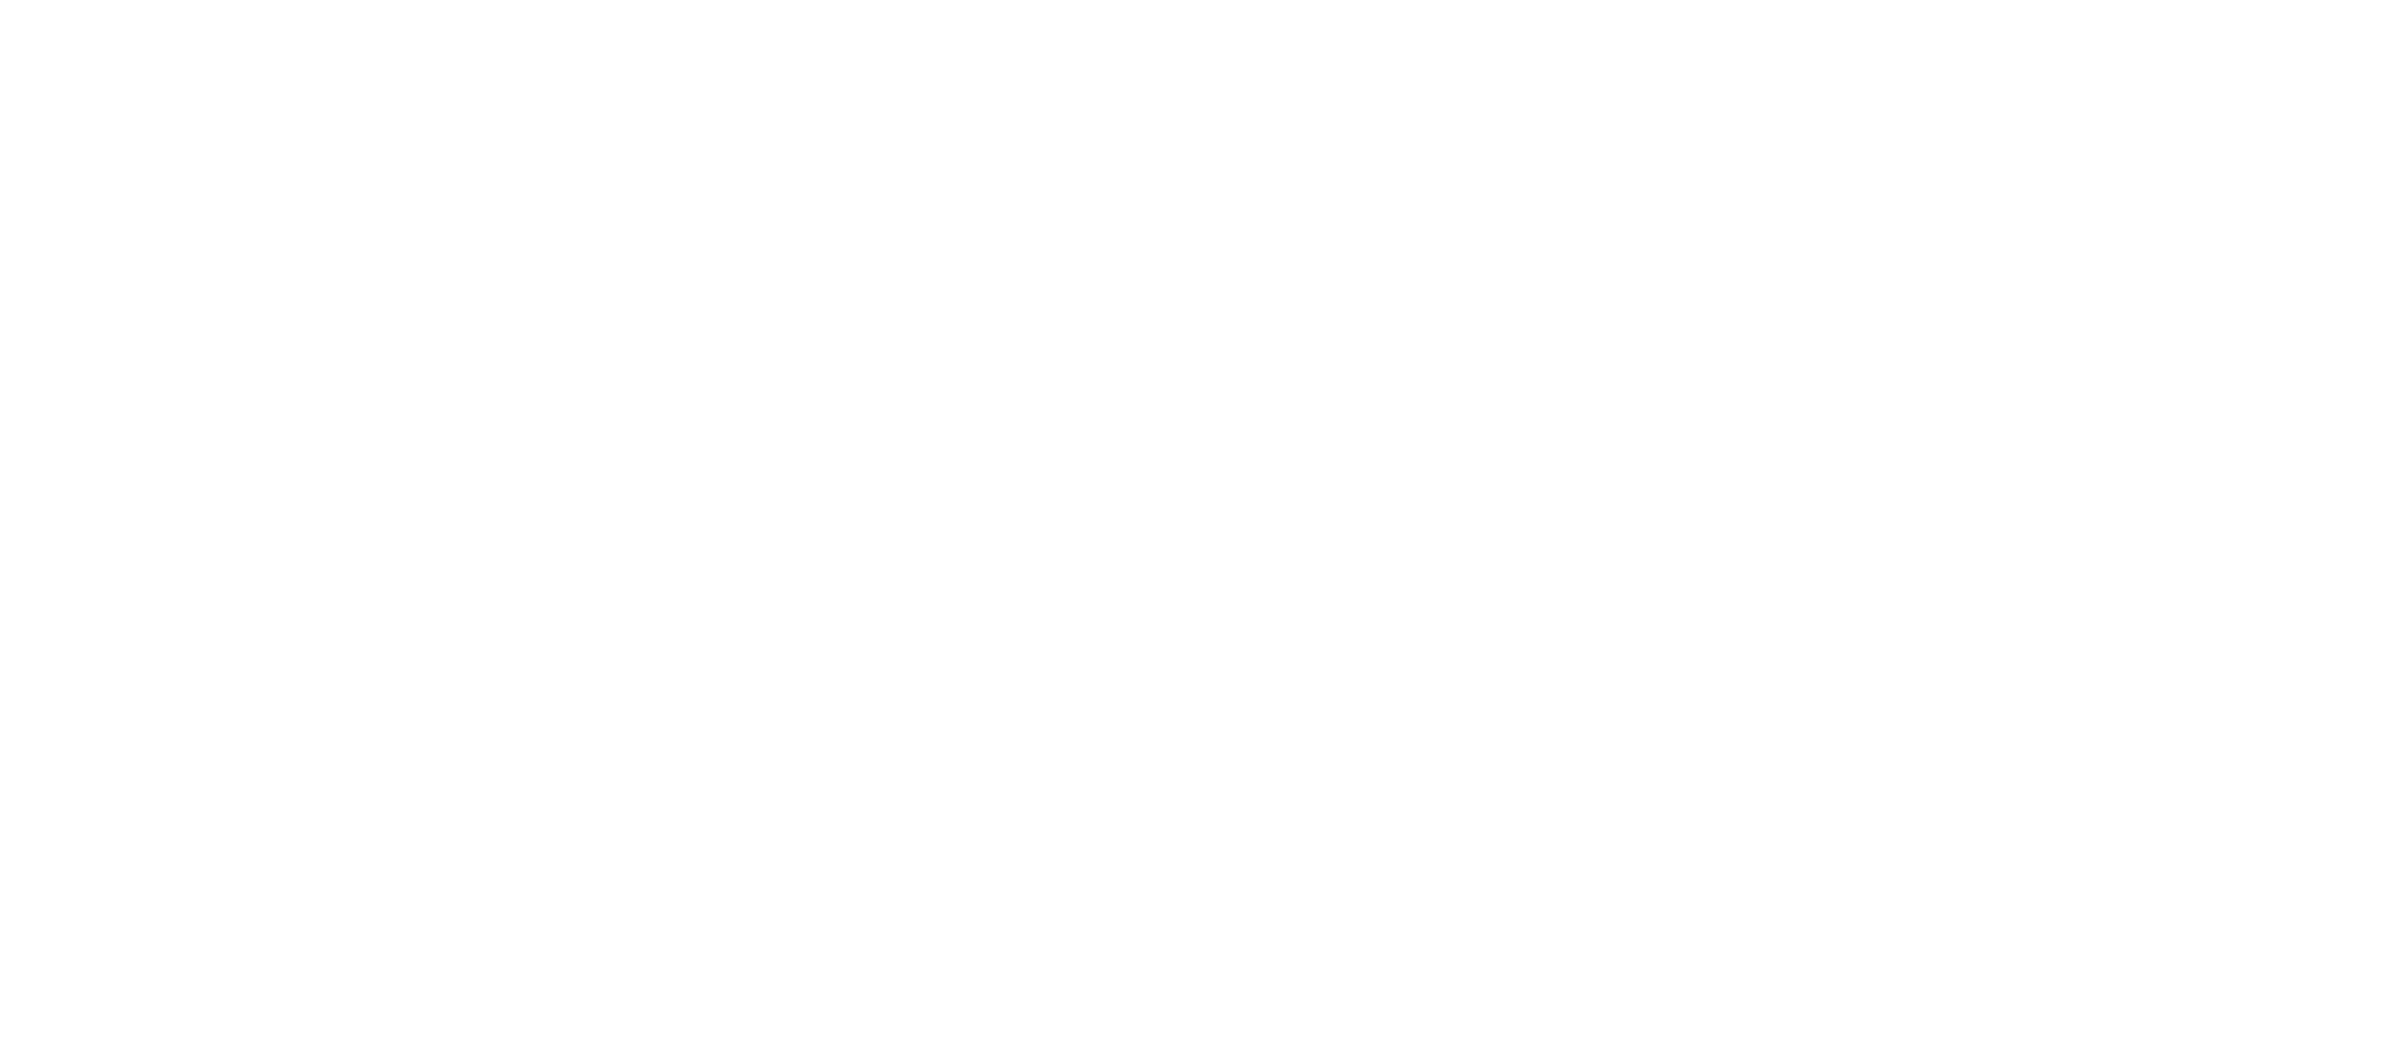 Stilhavn Real Estate Services